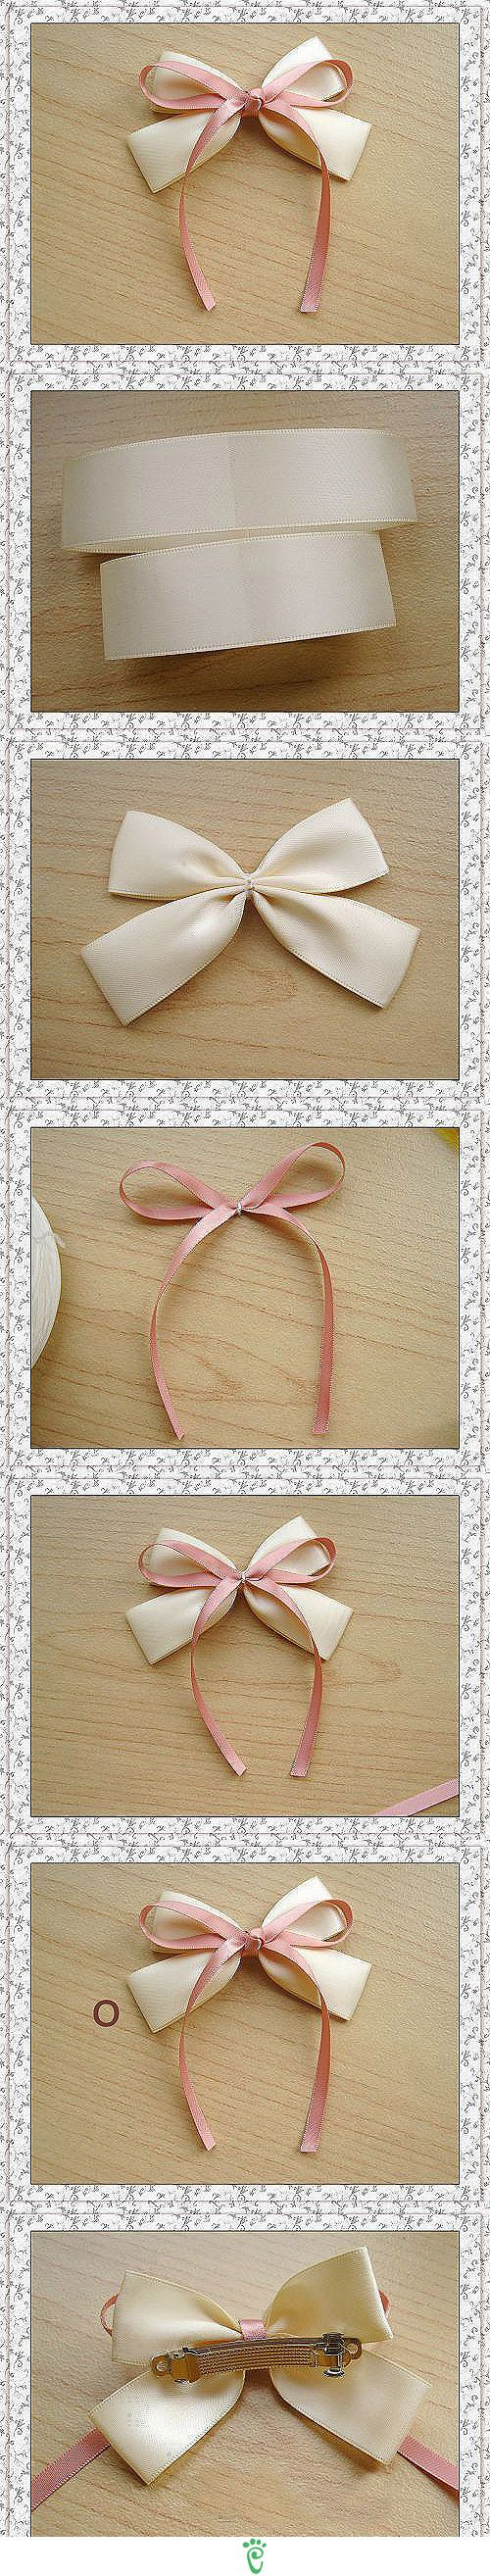 How to Make Hair Bows (Tutorial):